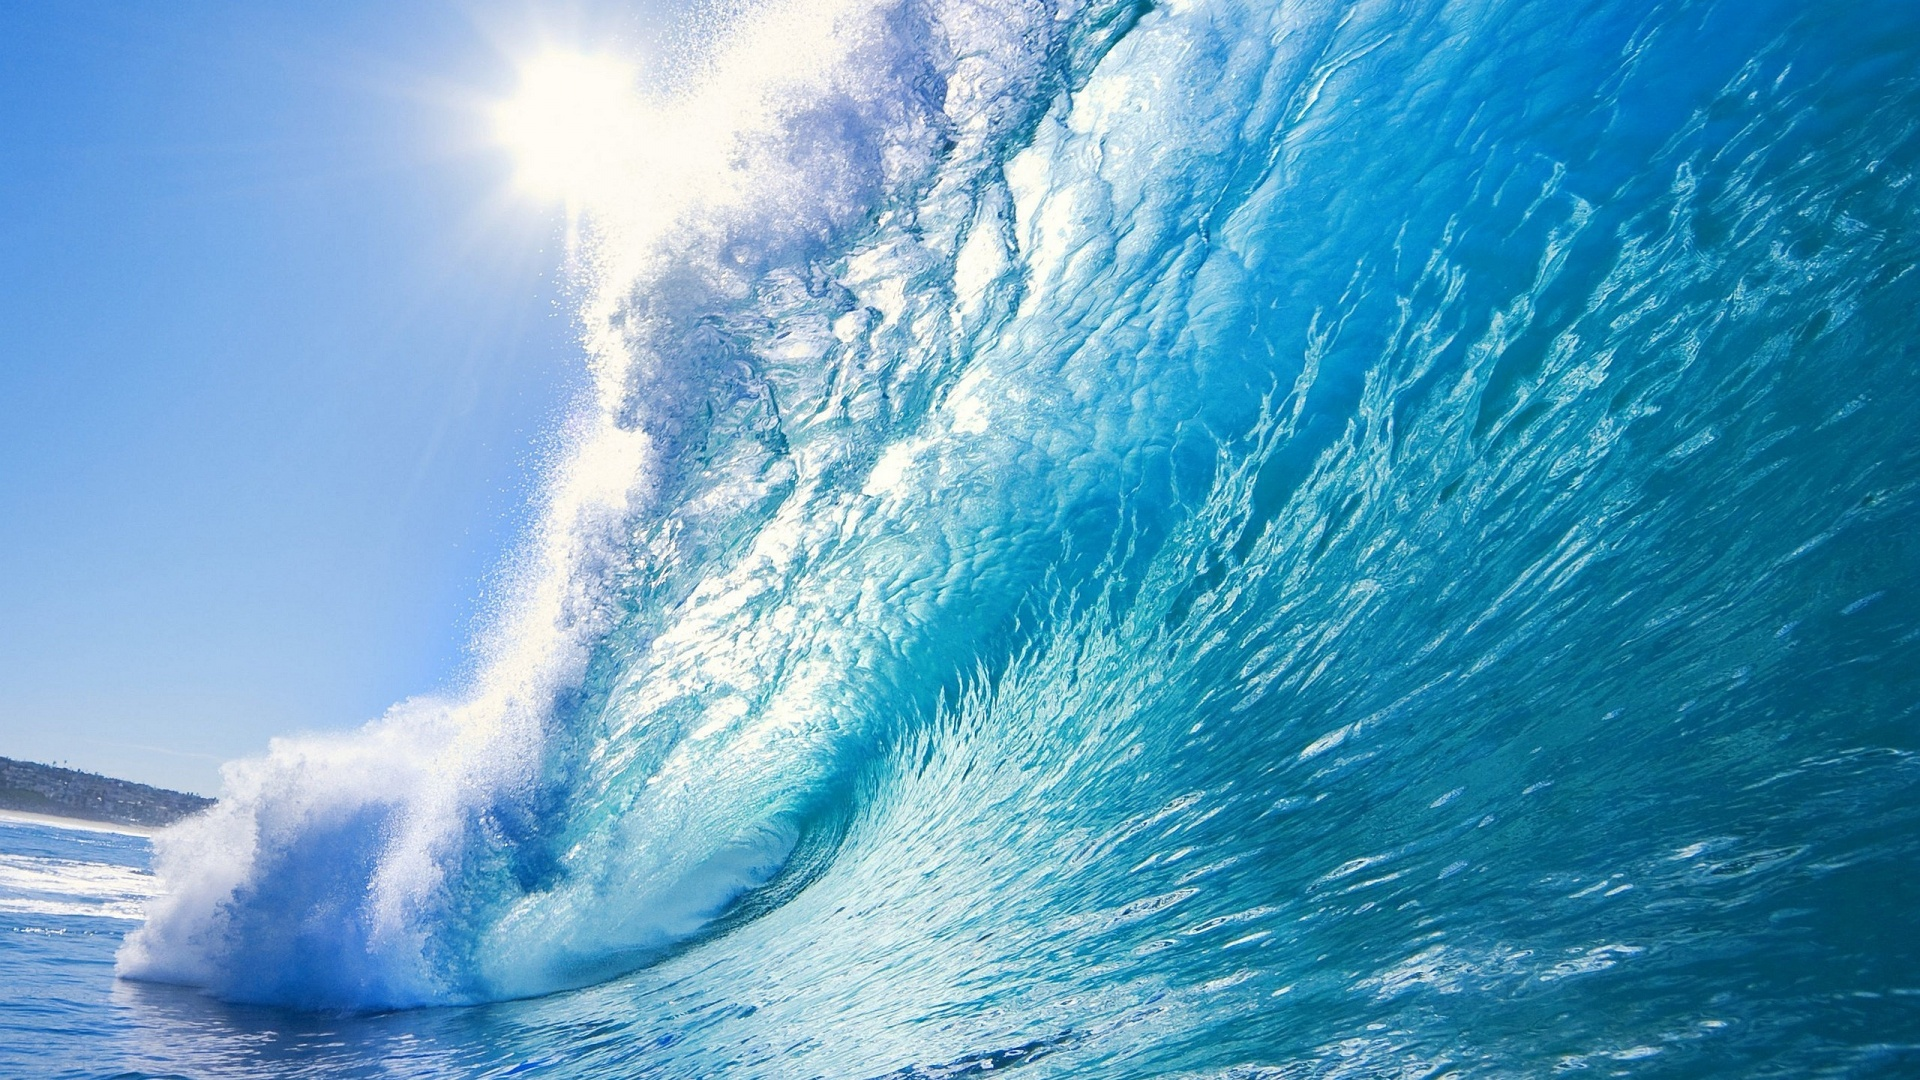 Big Wave Coming Wallpaper in 1920x1080 HD Resolutions